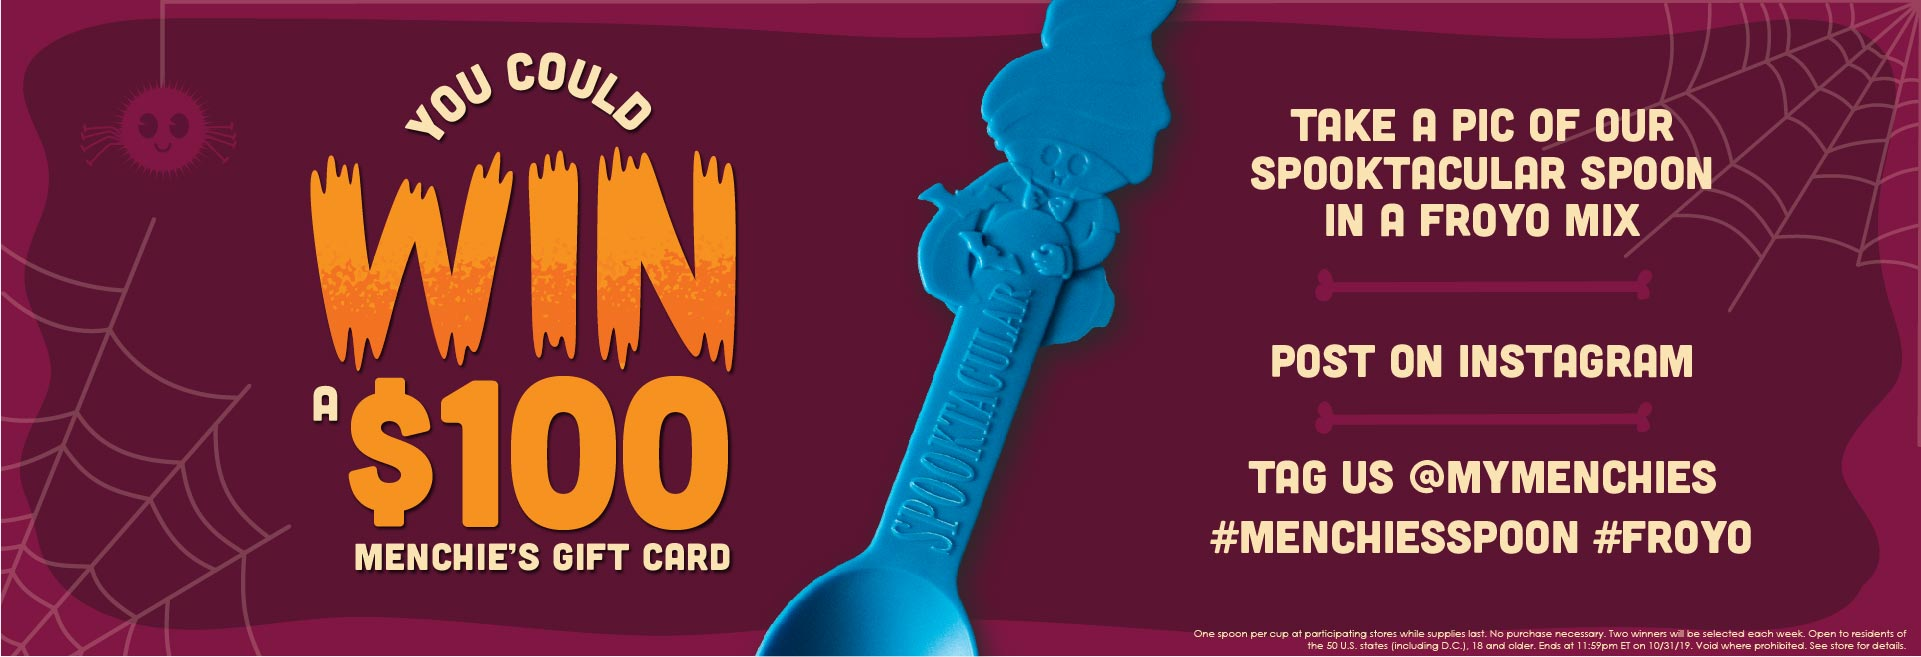 Halloween Spoon Instagram Contest. Enter to win a $100 Menchie's gift card! To enter, take a pic of our Spooktacular Spoon in a froyo mix, post to Instagram, and tag us - @myMenchies and use the hashtags #MenchiesSpoon and #Froyo